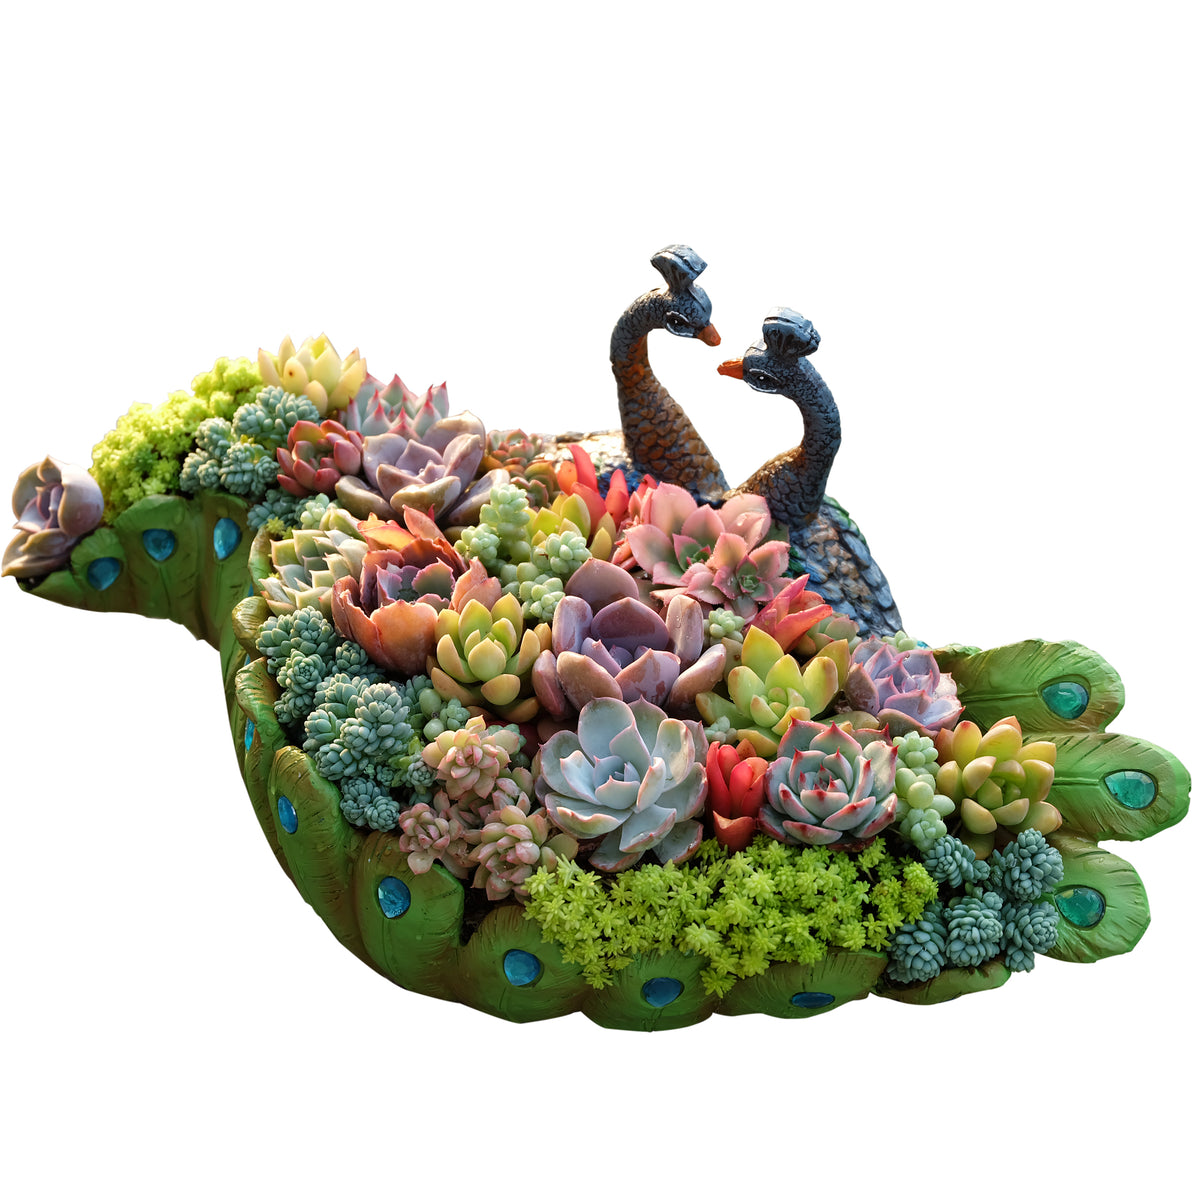 Detailed Large Peacock Succulent Planter Pot Cactus Container Vintage Planter